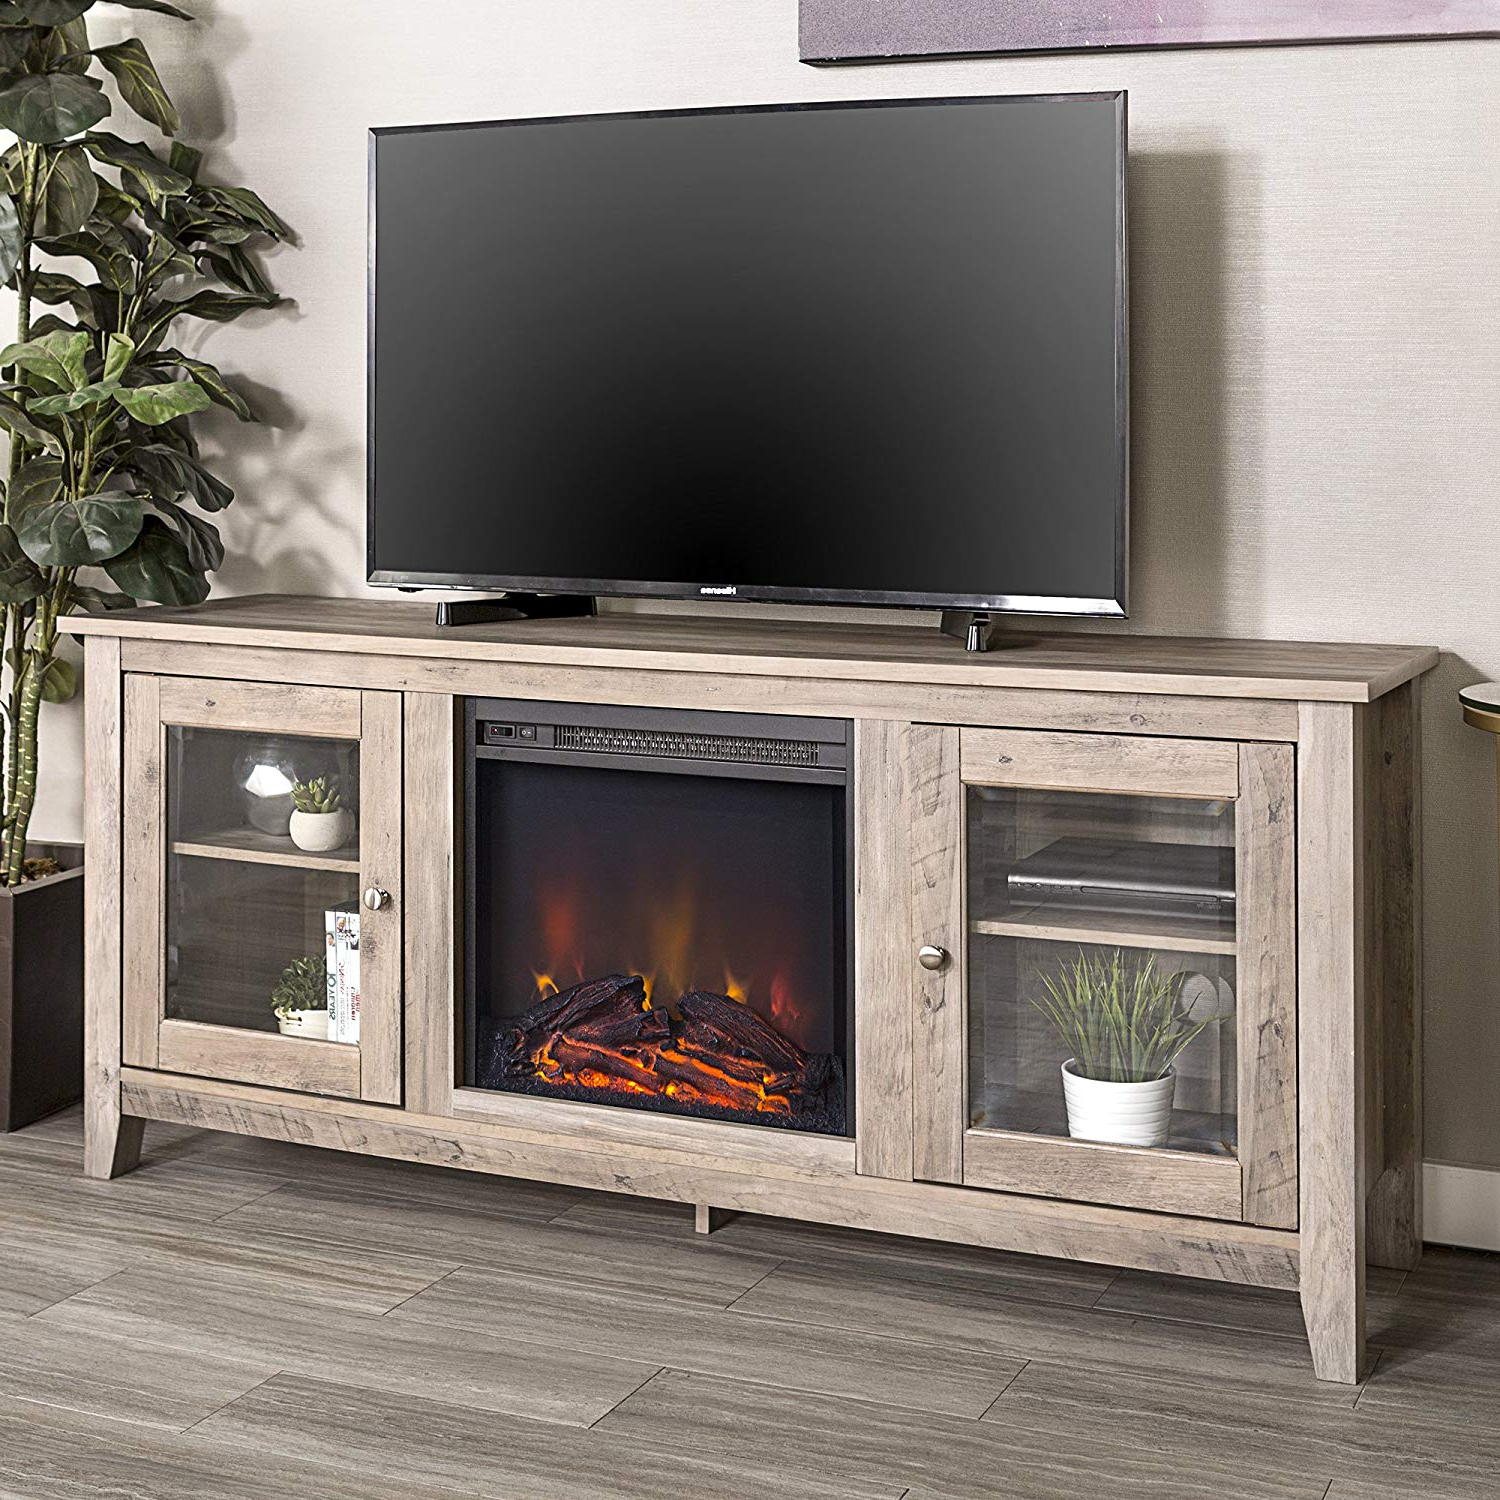 "Best And Newest Amazon: We Furniture 58"" Wood Media Tv Stand Console With Intended For Casey Grey 66 Inch Tv Stands (View 13 of 20)"